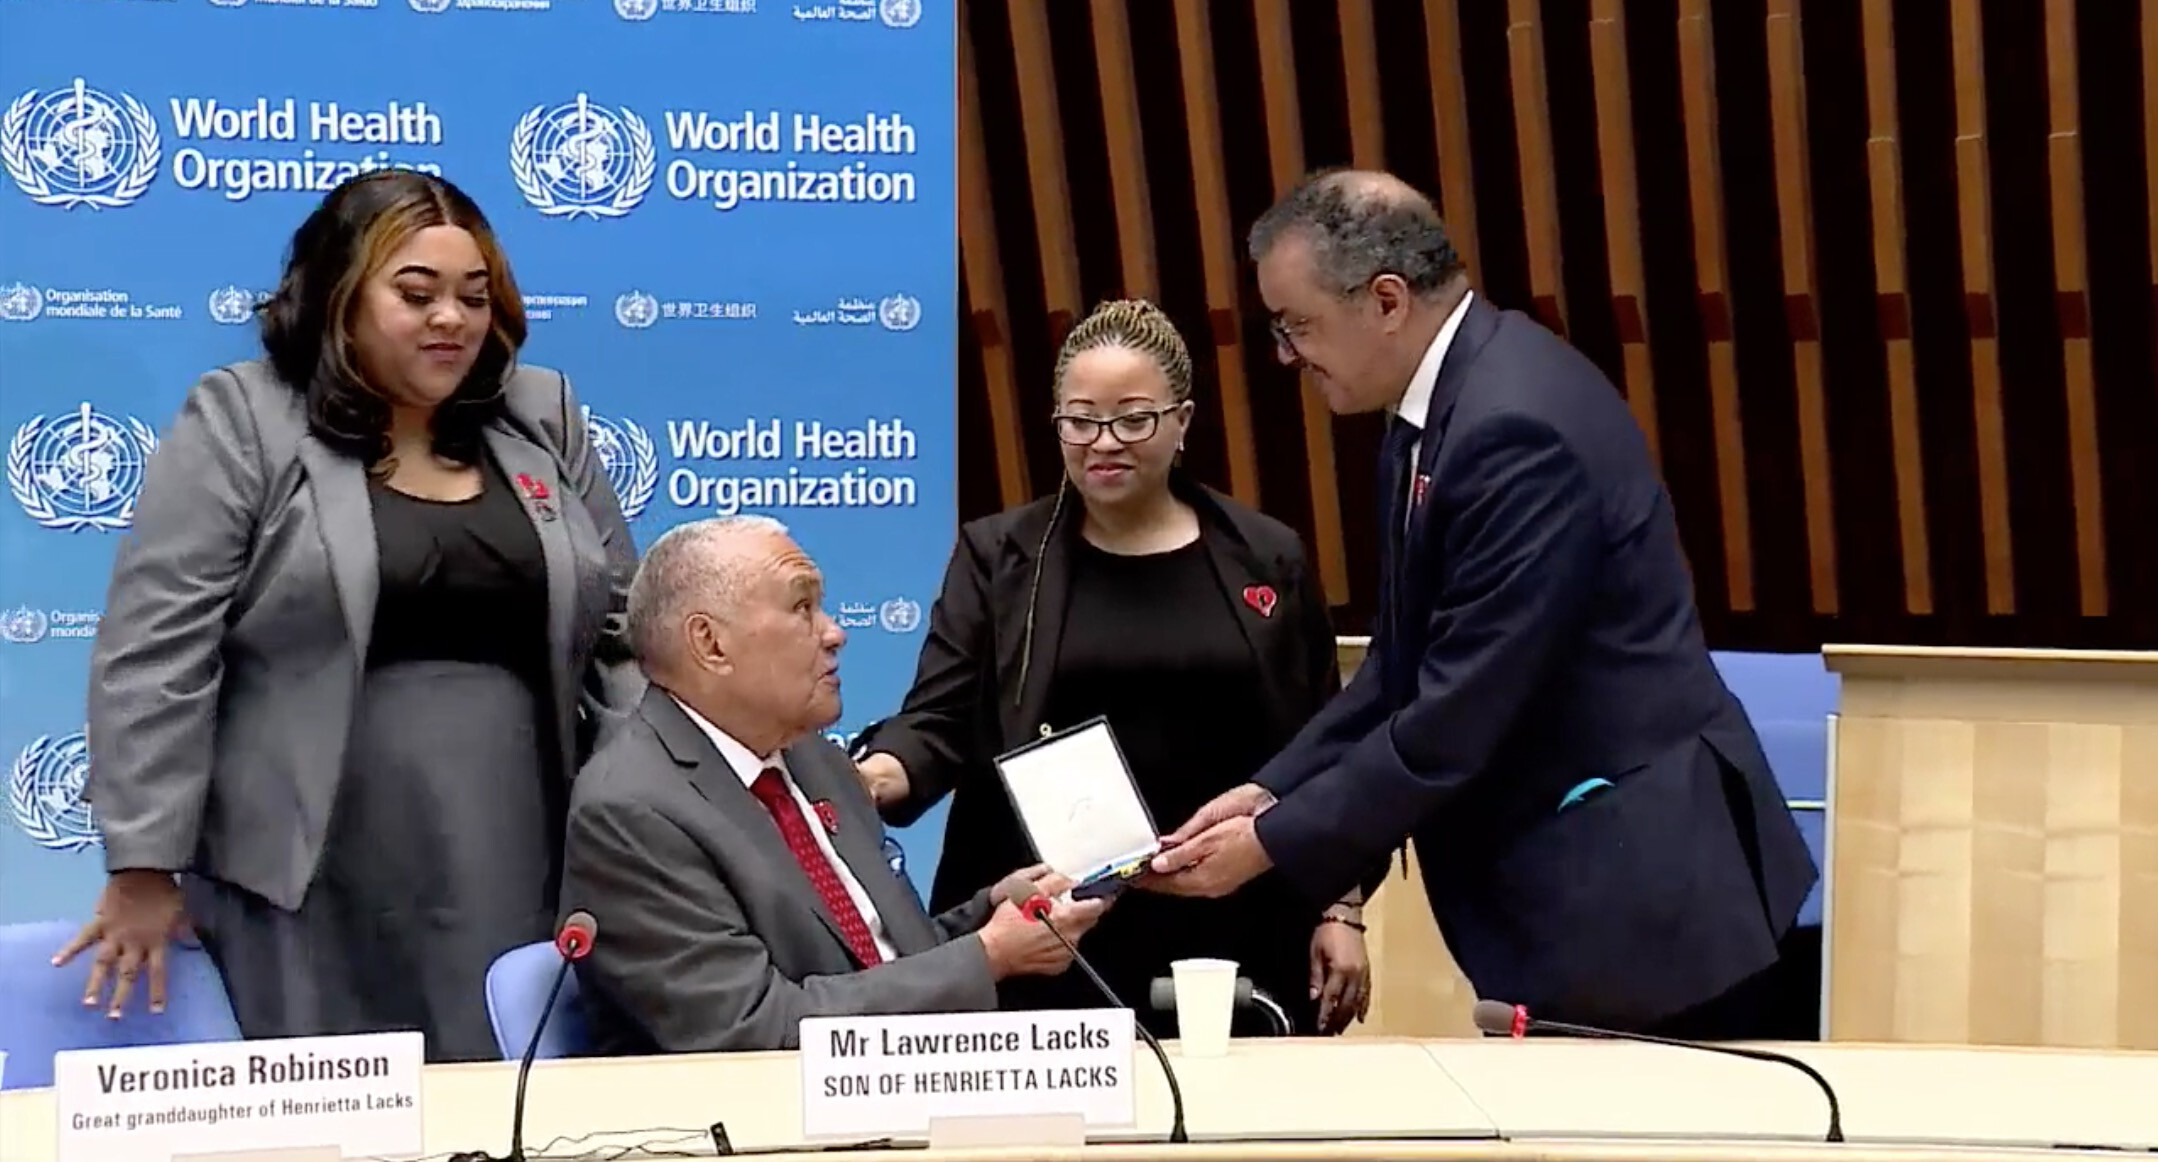 The World Health Organization honors the late Henrietta Lacks for her contributions to scientific research